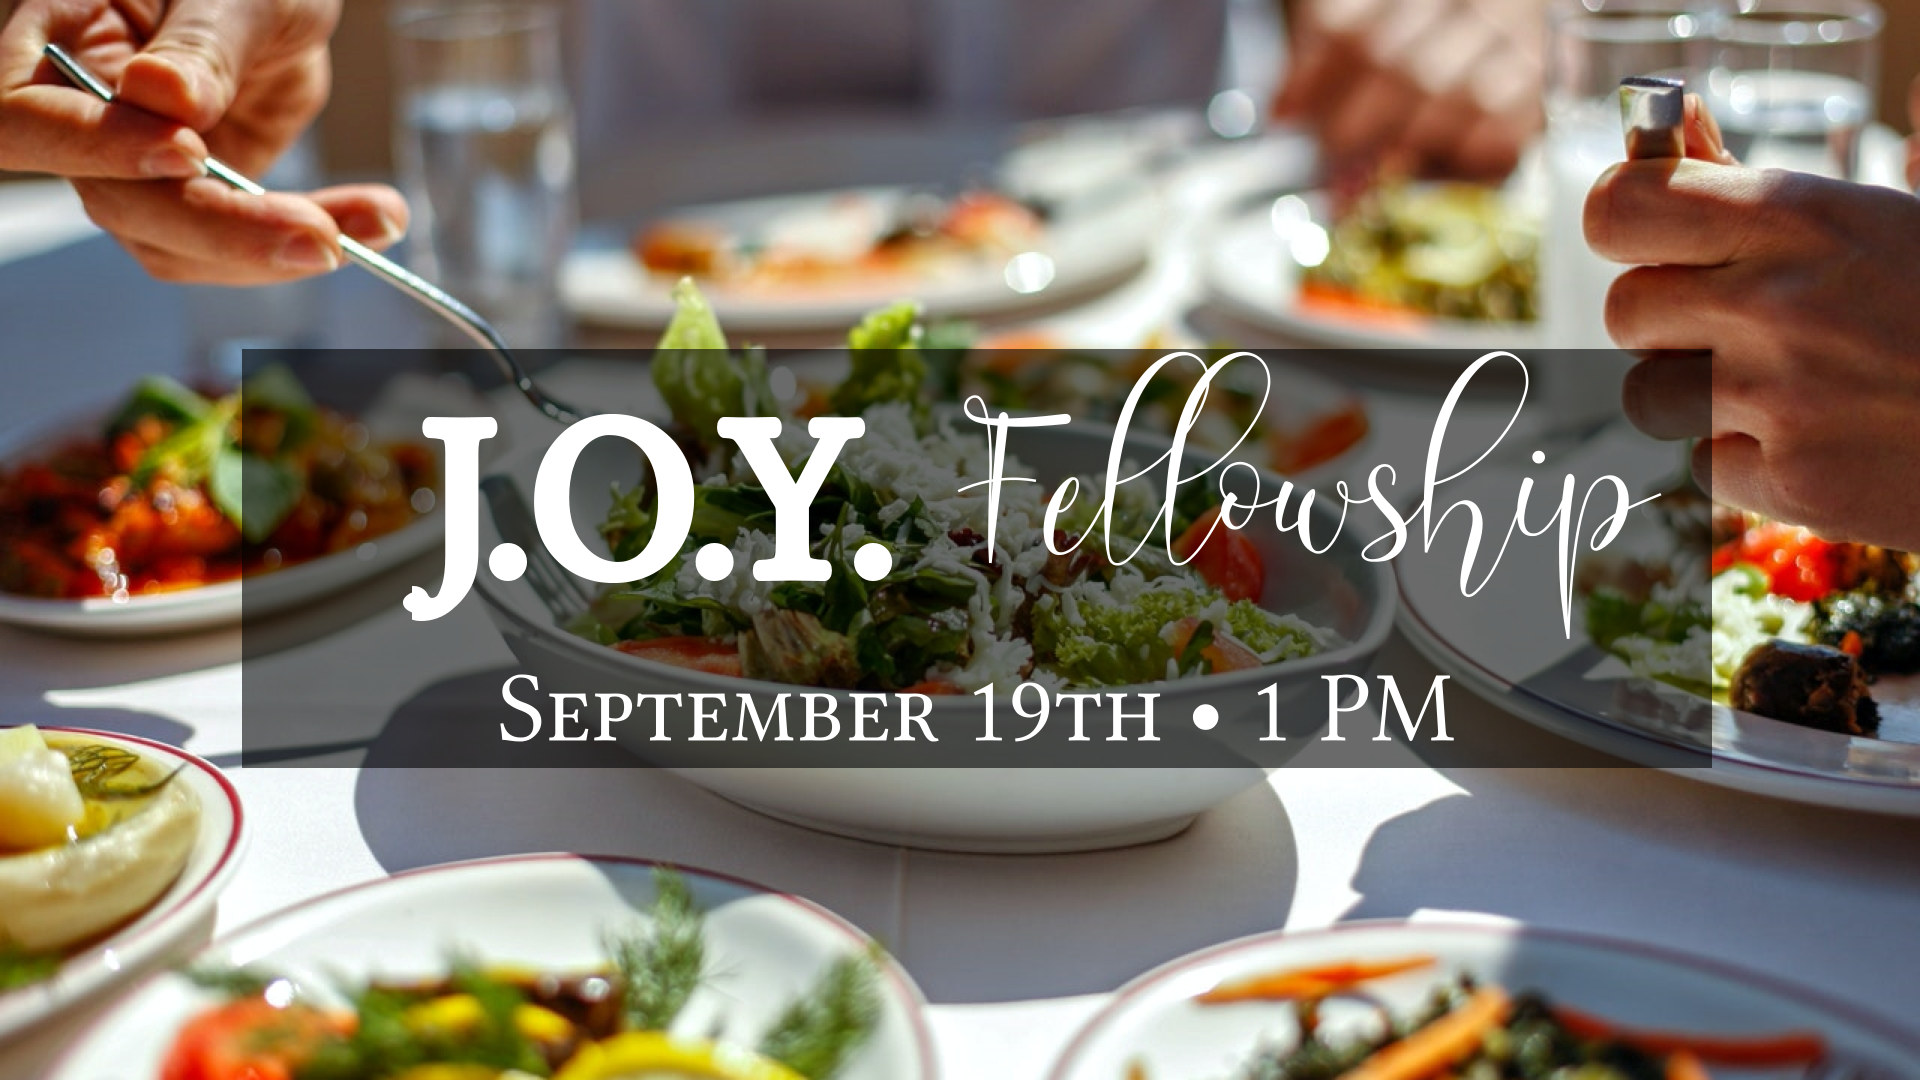 J.O.Y. Group Fellowship - 1pm